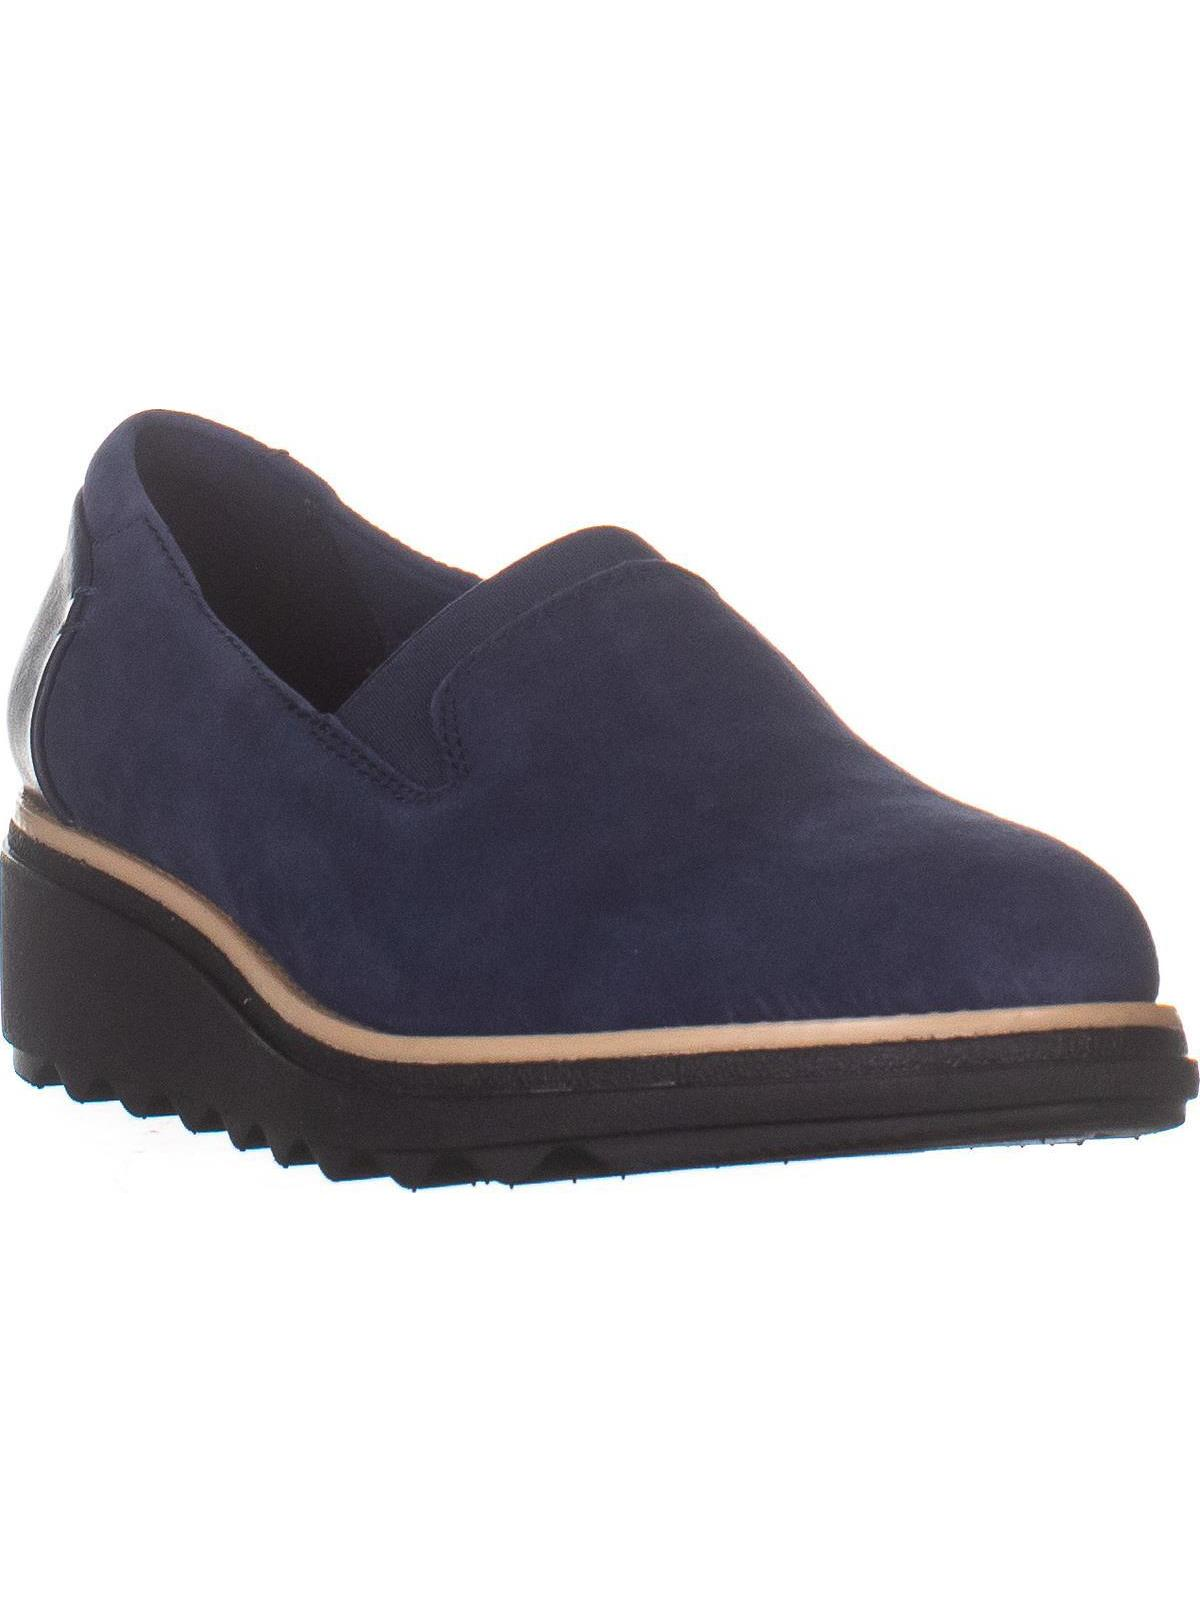 Clarks Sharon Dolly Slip On Loafers